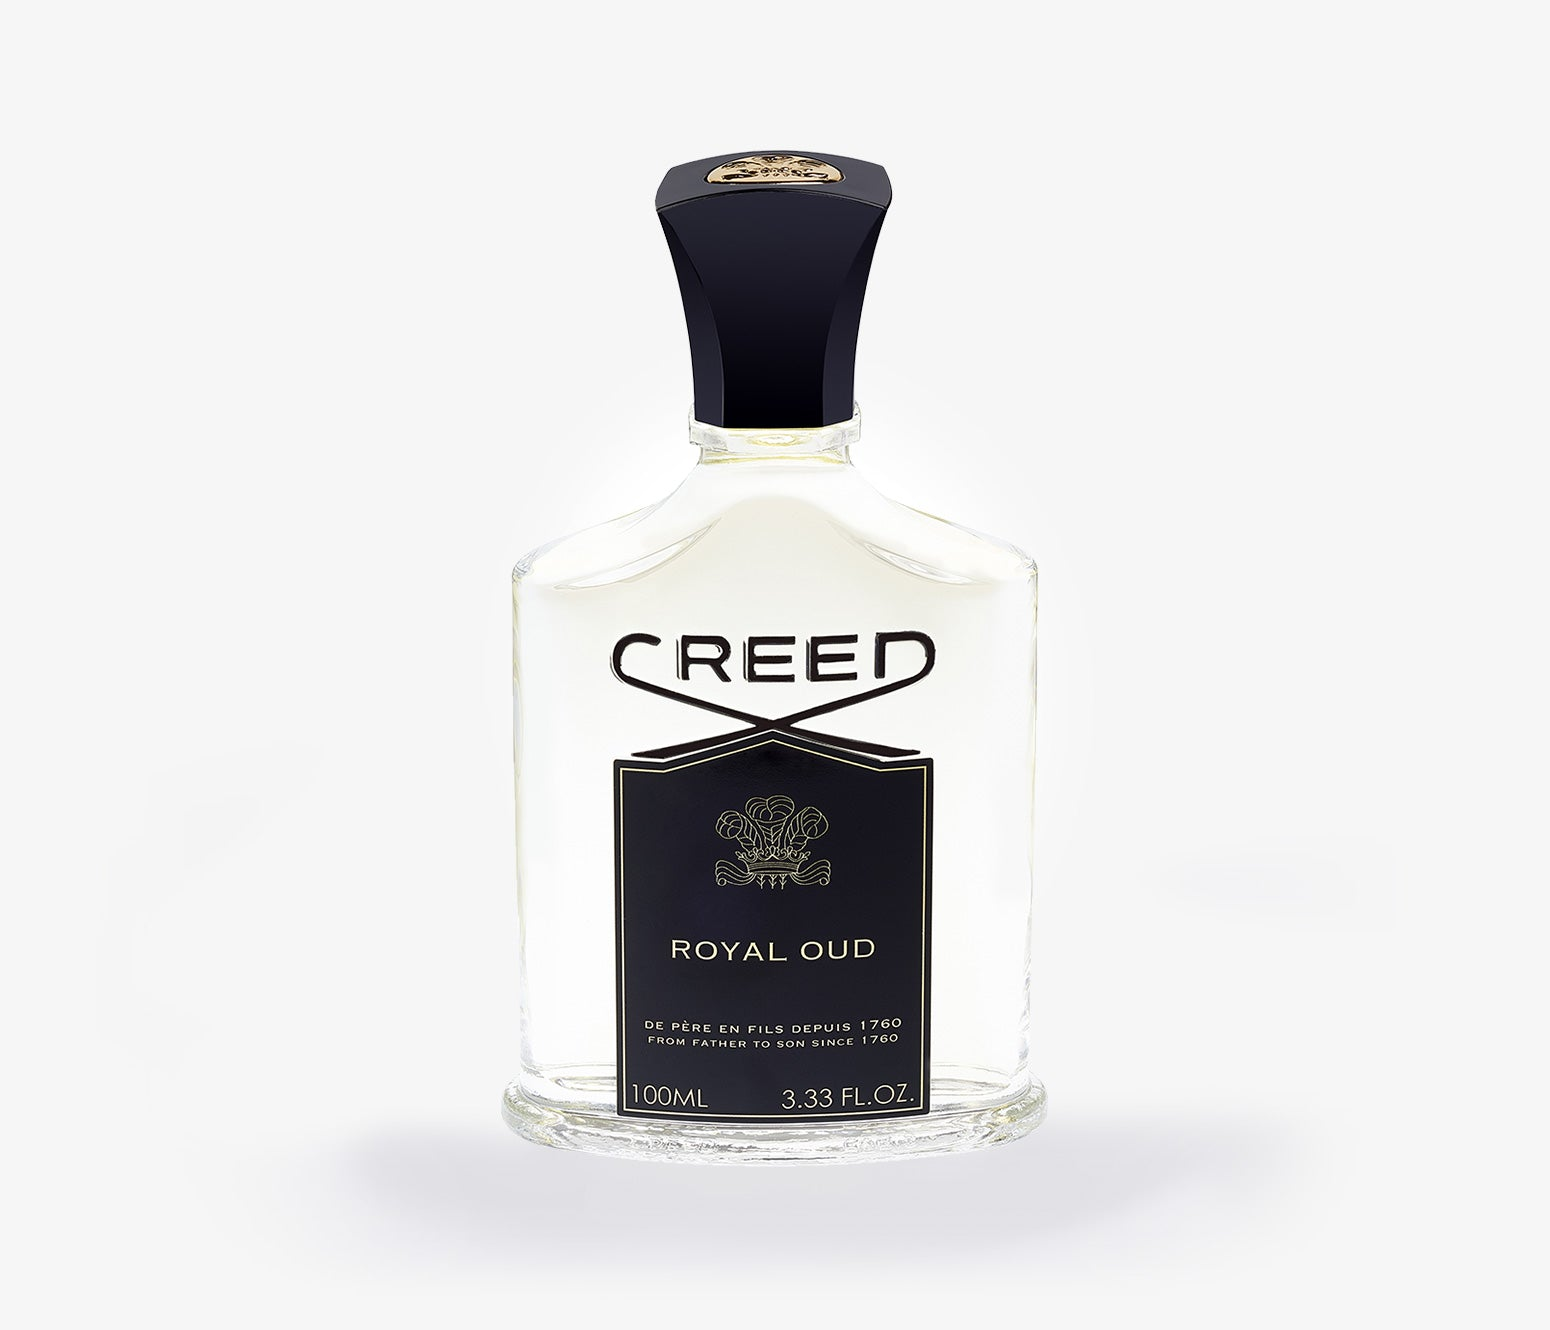 Creed - Royal Oud - 50ml - QQS001 - Product Image - Fragrance - Les Senteurs